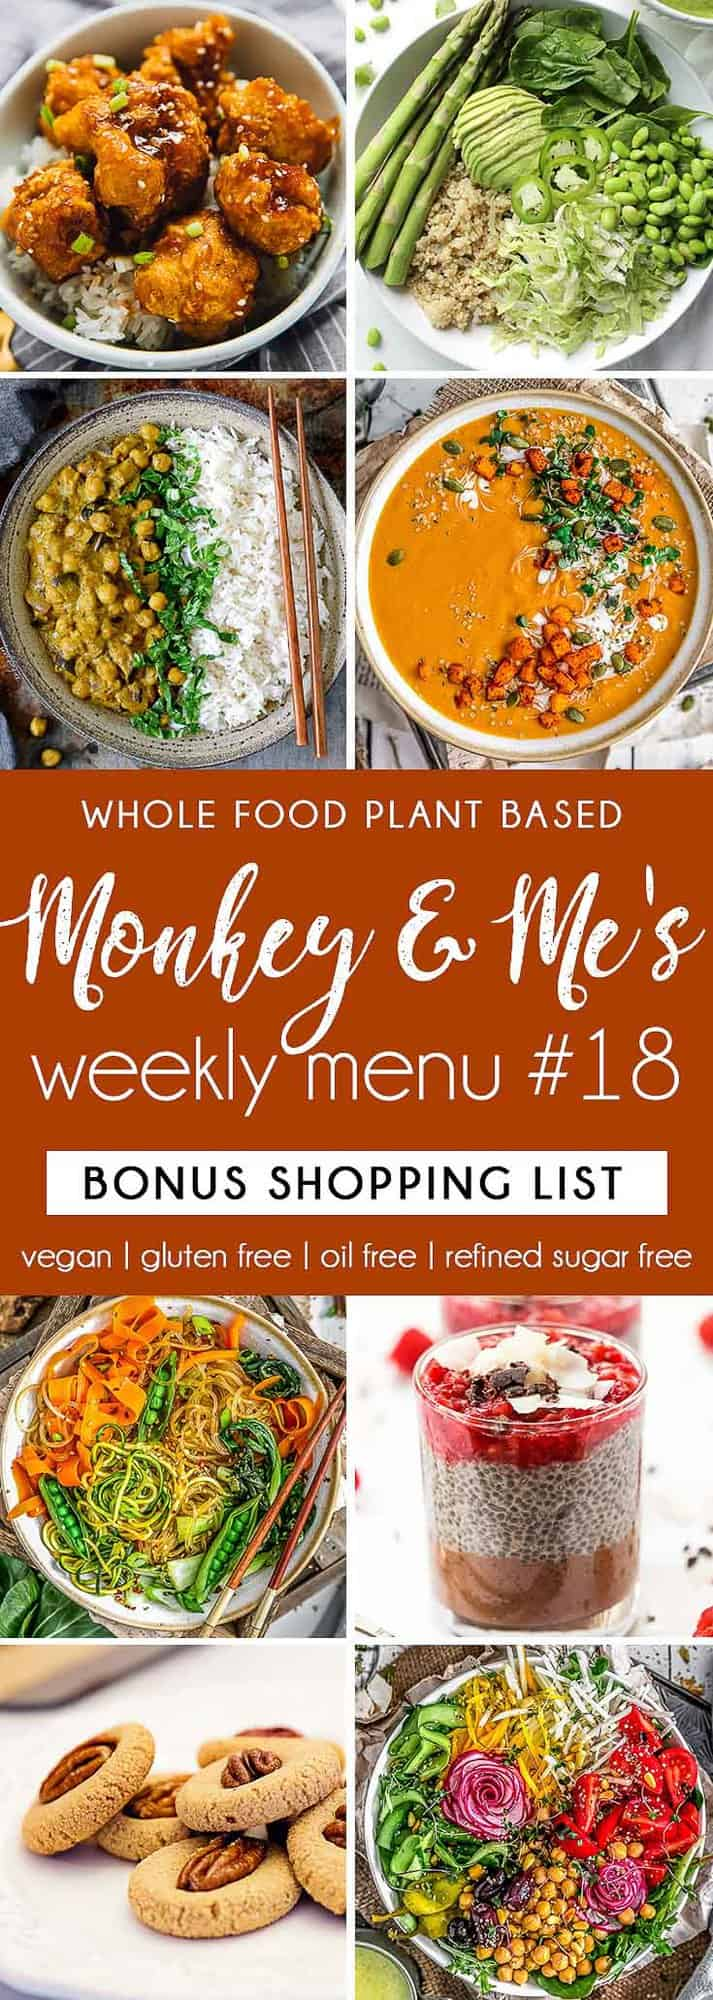 Monkey and Me's Menu, Menu 18, weekly recipe plan, menu, planner, plant based, vegan, vegetarian, whole food plant based, gluten free, recipe, wfpb, healthy, healthy vegan, oil free, no refined sugar, no oil, refined sugar free, dairy free, dinner, lunch, menu, plant based menu, vegan menu, weekly menu, meal plan, vegan meal plan, plant based meal plan, shopping list, grocery